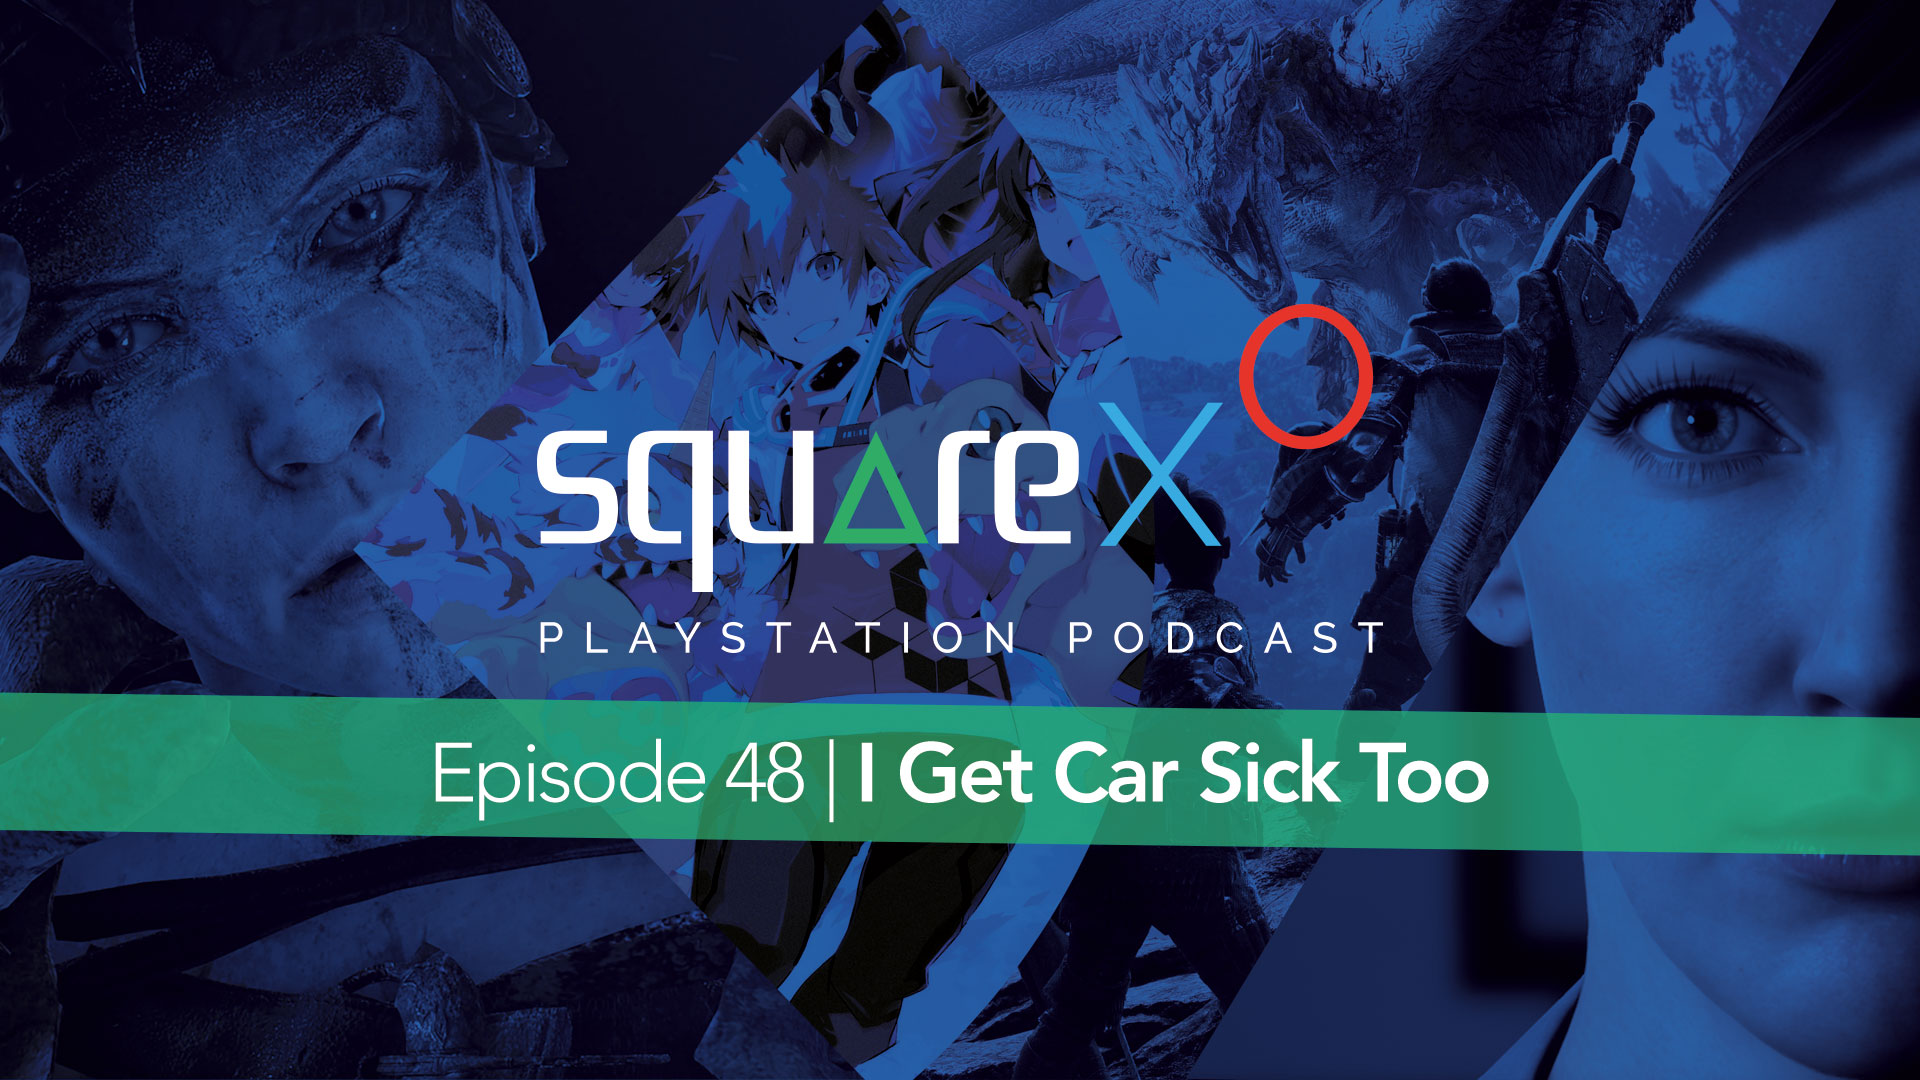 Episode 48 | I Get Car Sick Too